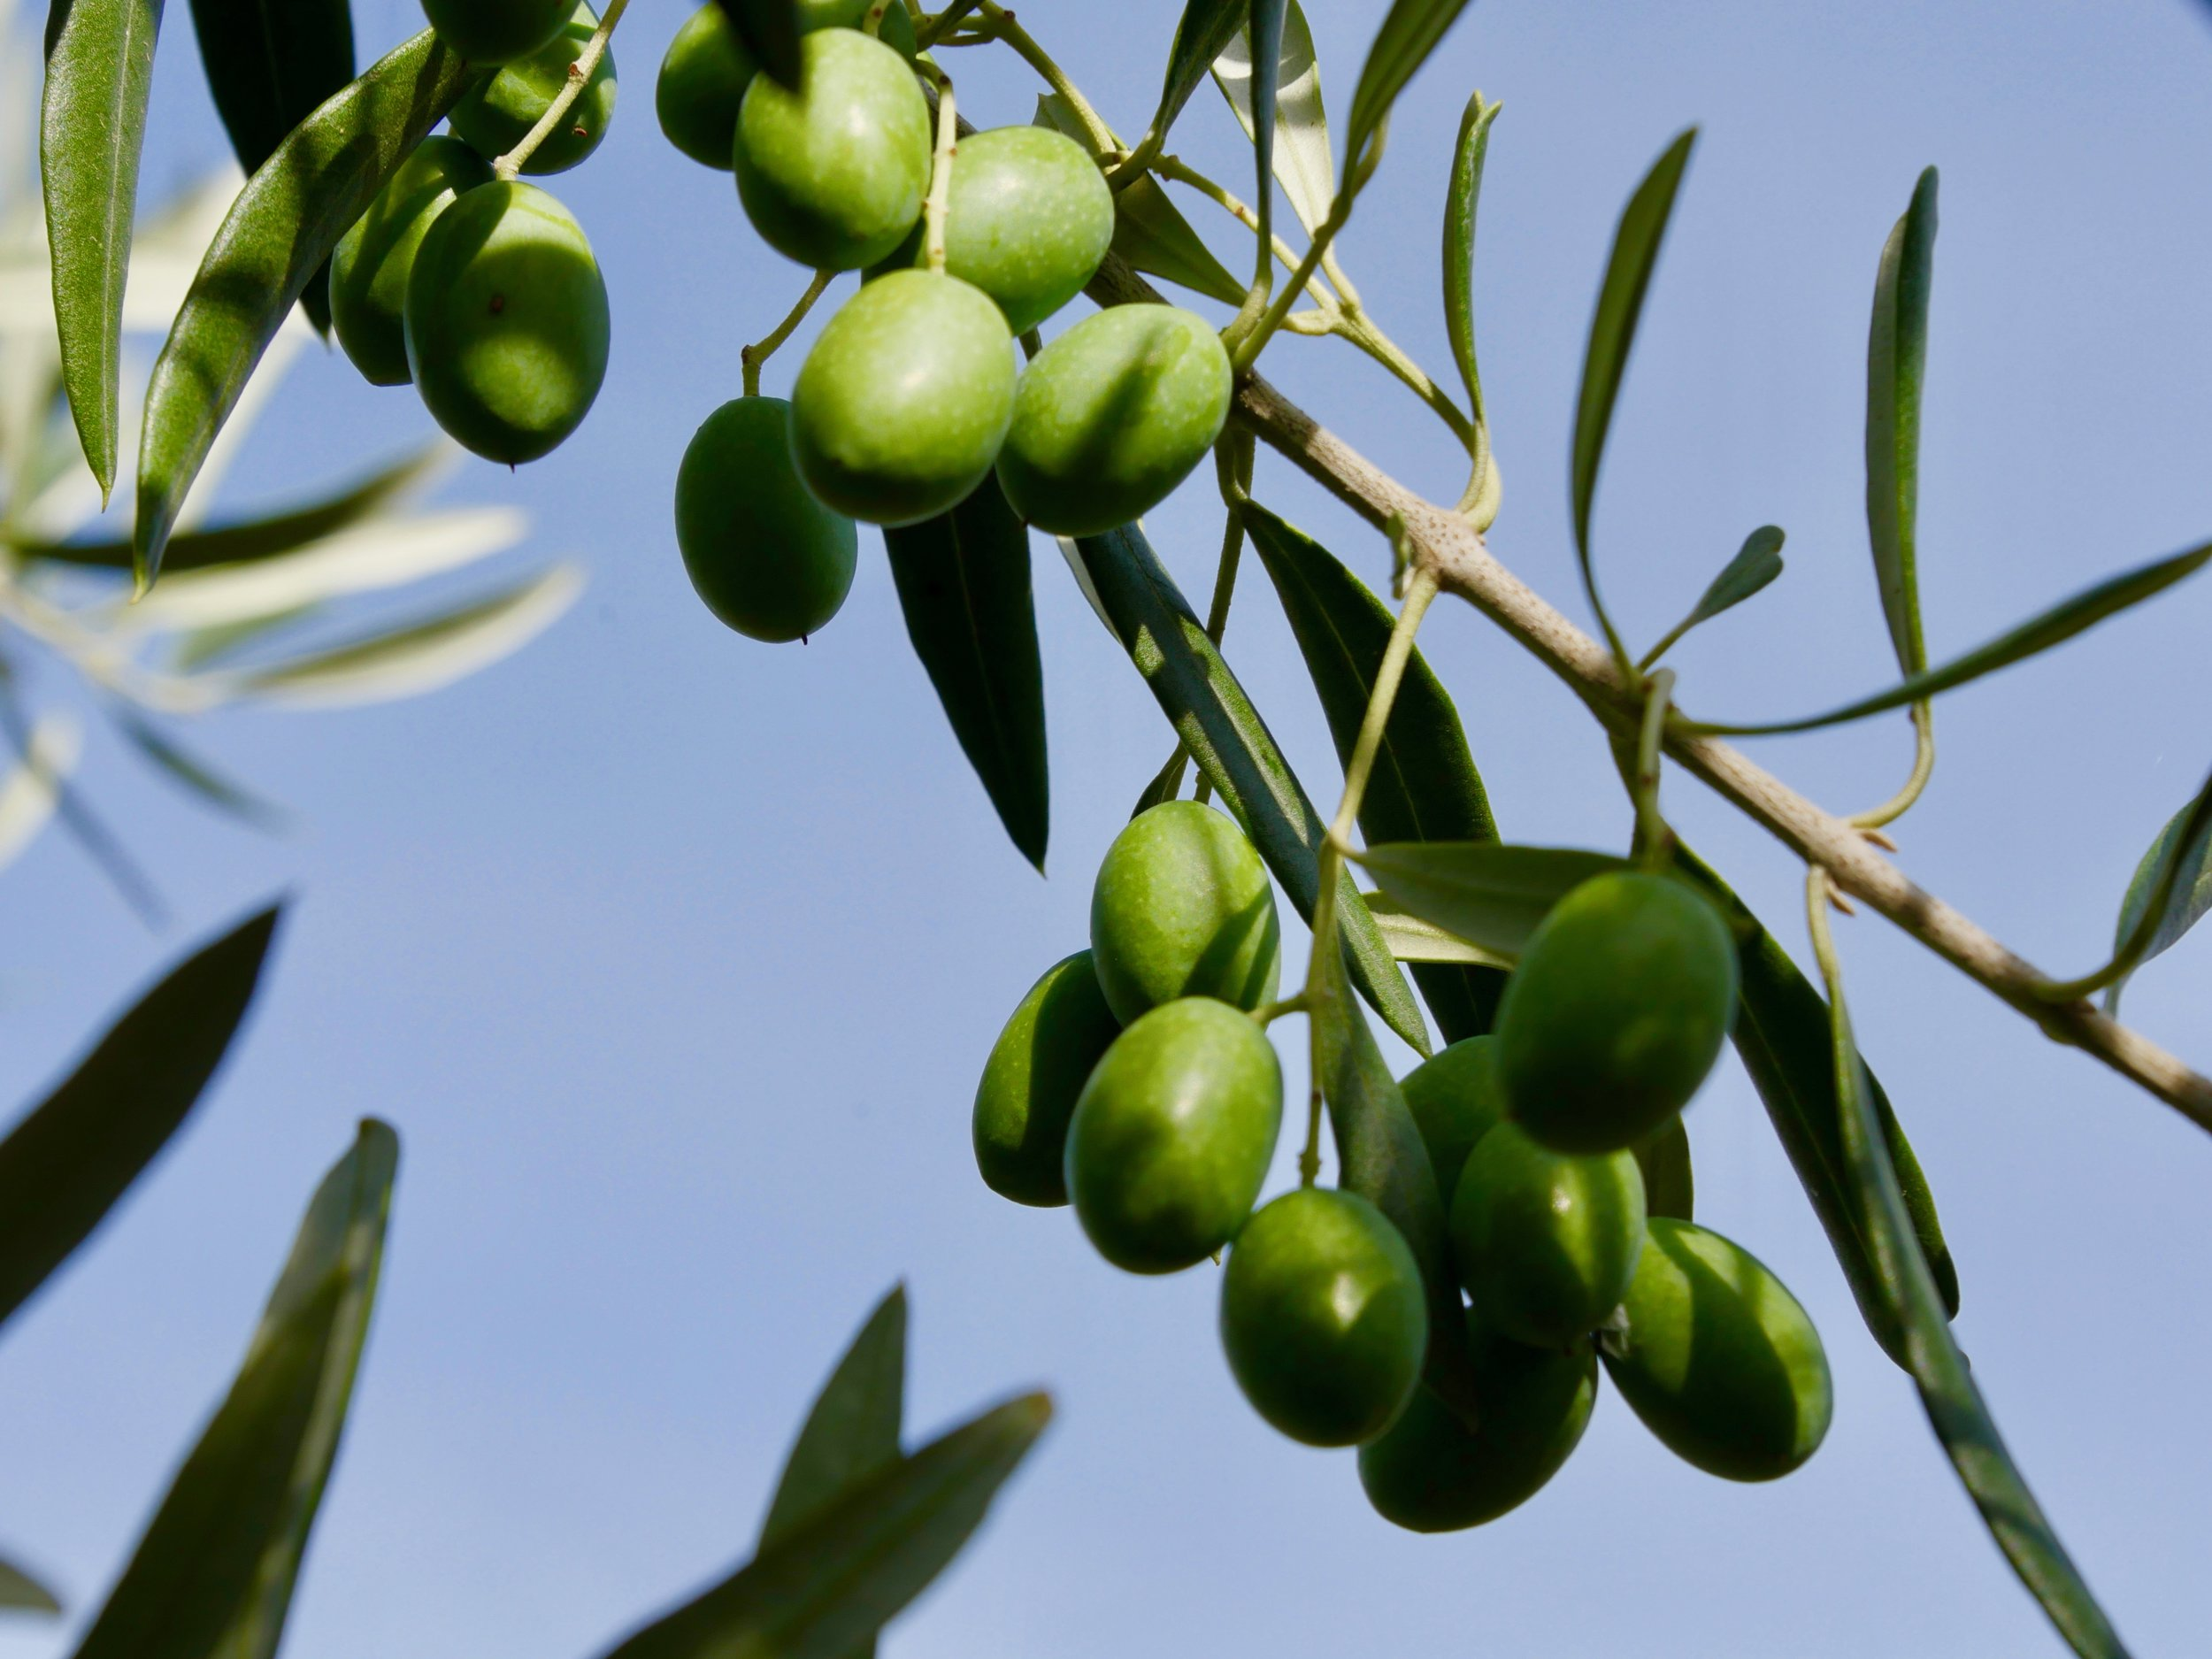 Be it the blue sky or whatever, love the contrast of the green olives not even starting to ripen earlier in the year!